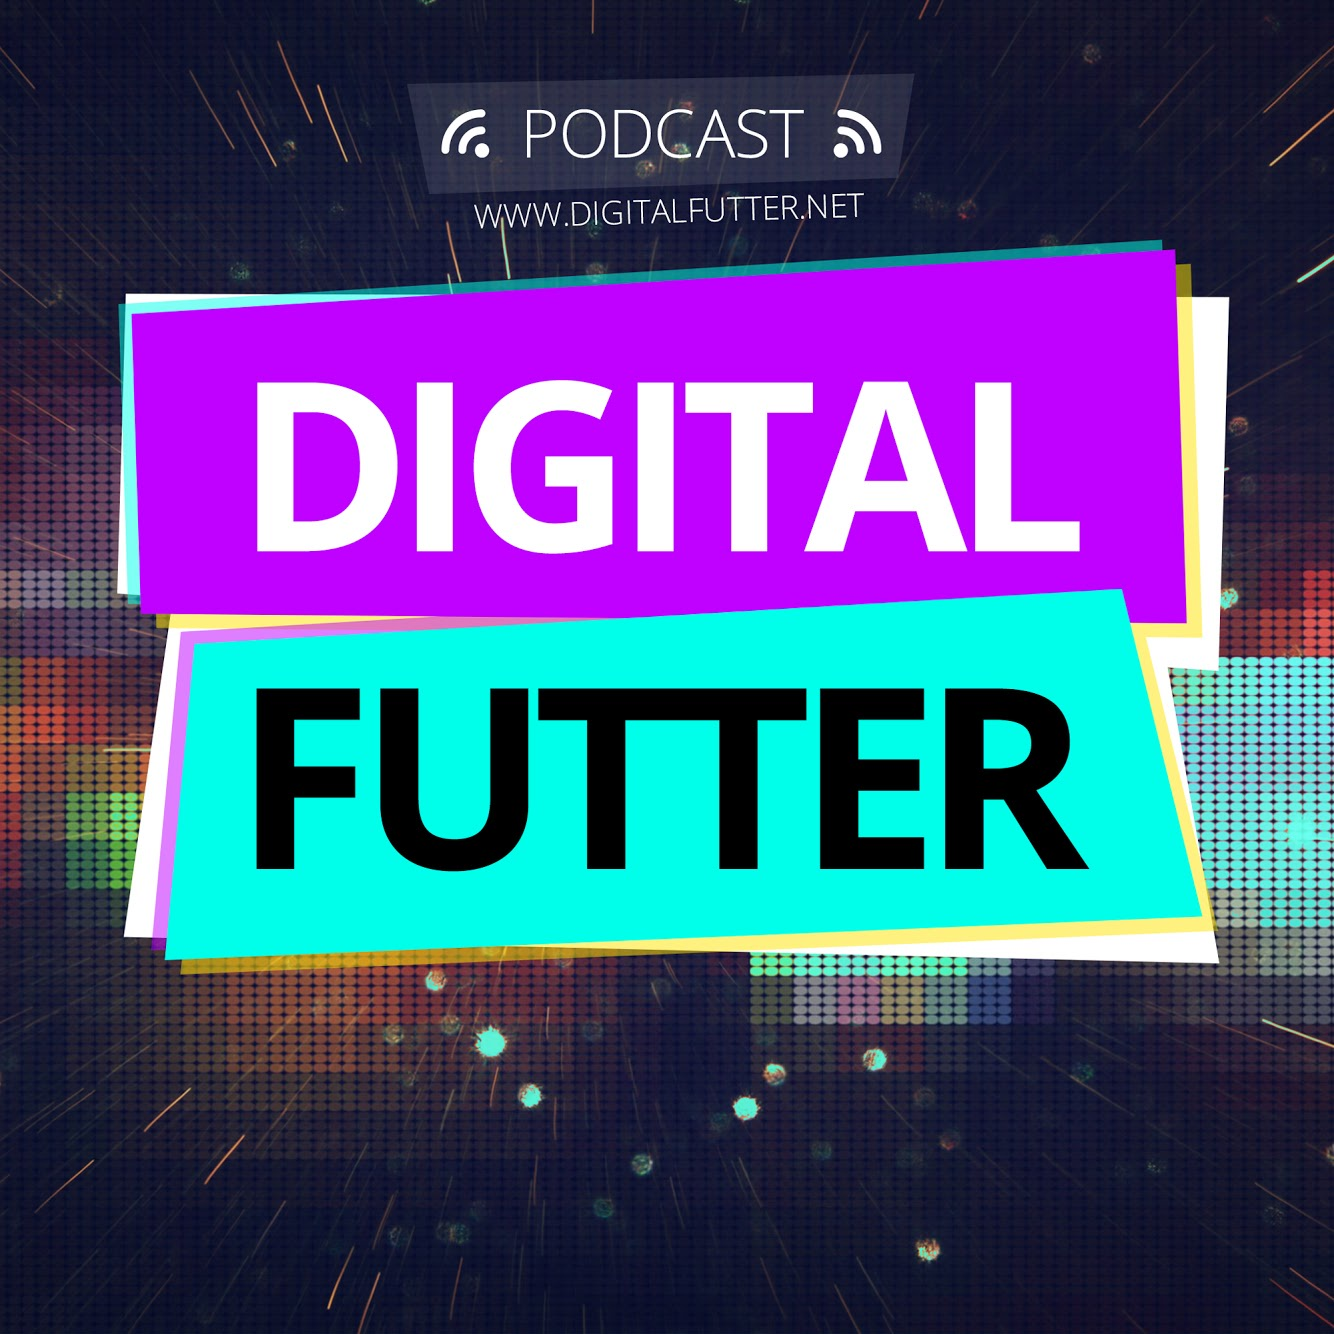 DIGITAL!FUTTER - PODCAST